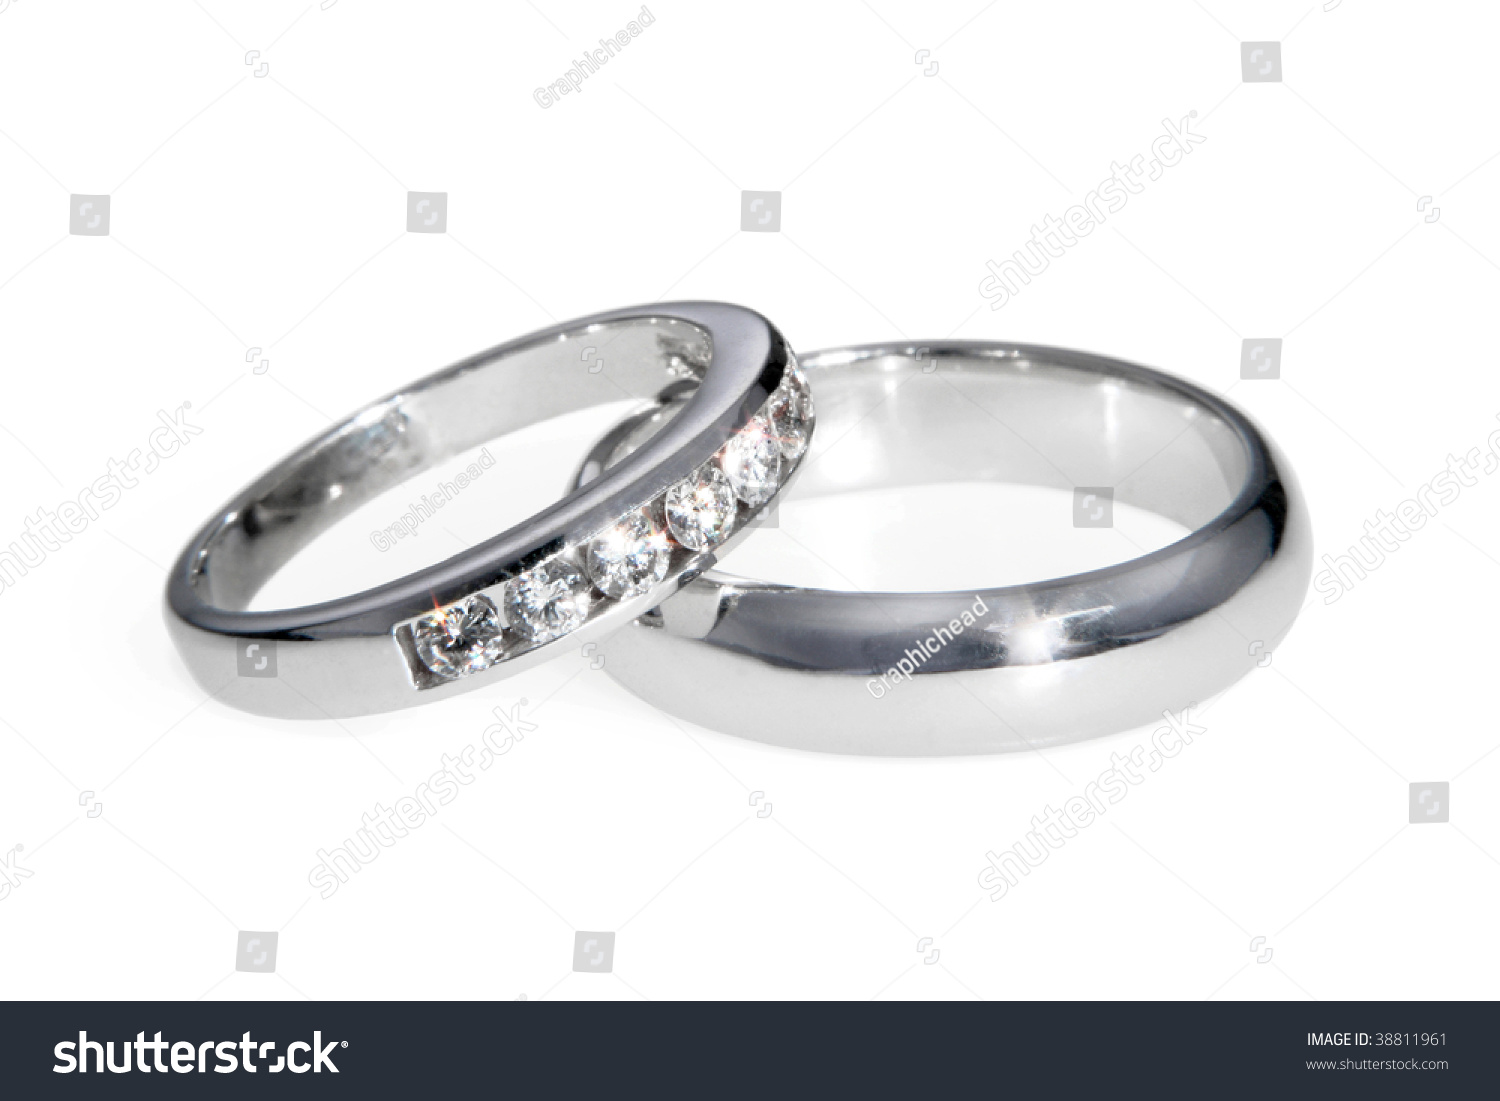 Diamond And White Gold Bride And Groom Wedding Bands (Rings), Isolated On White. Stock Photo